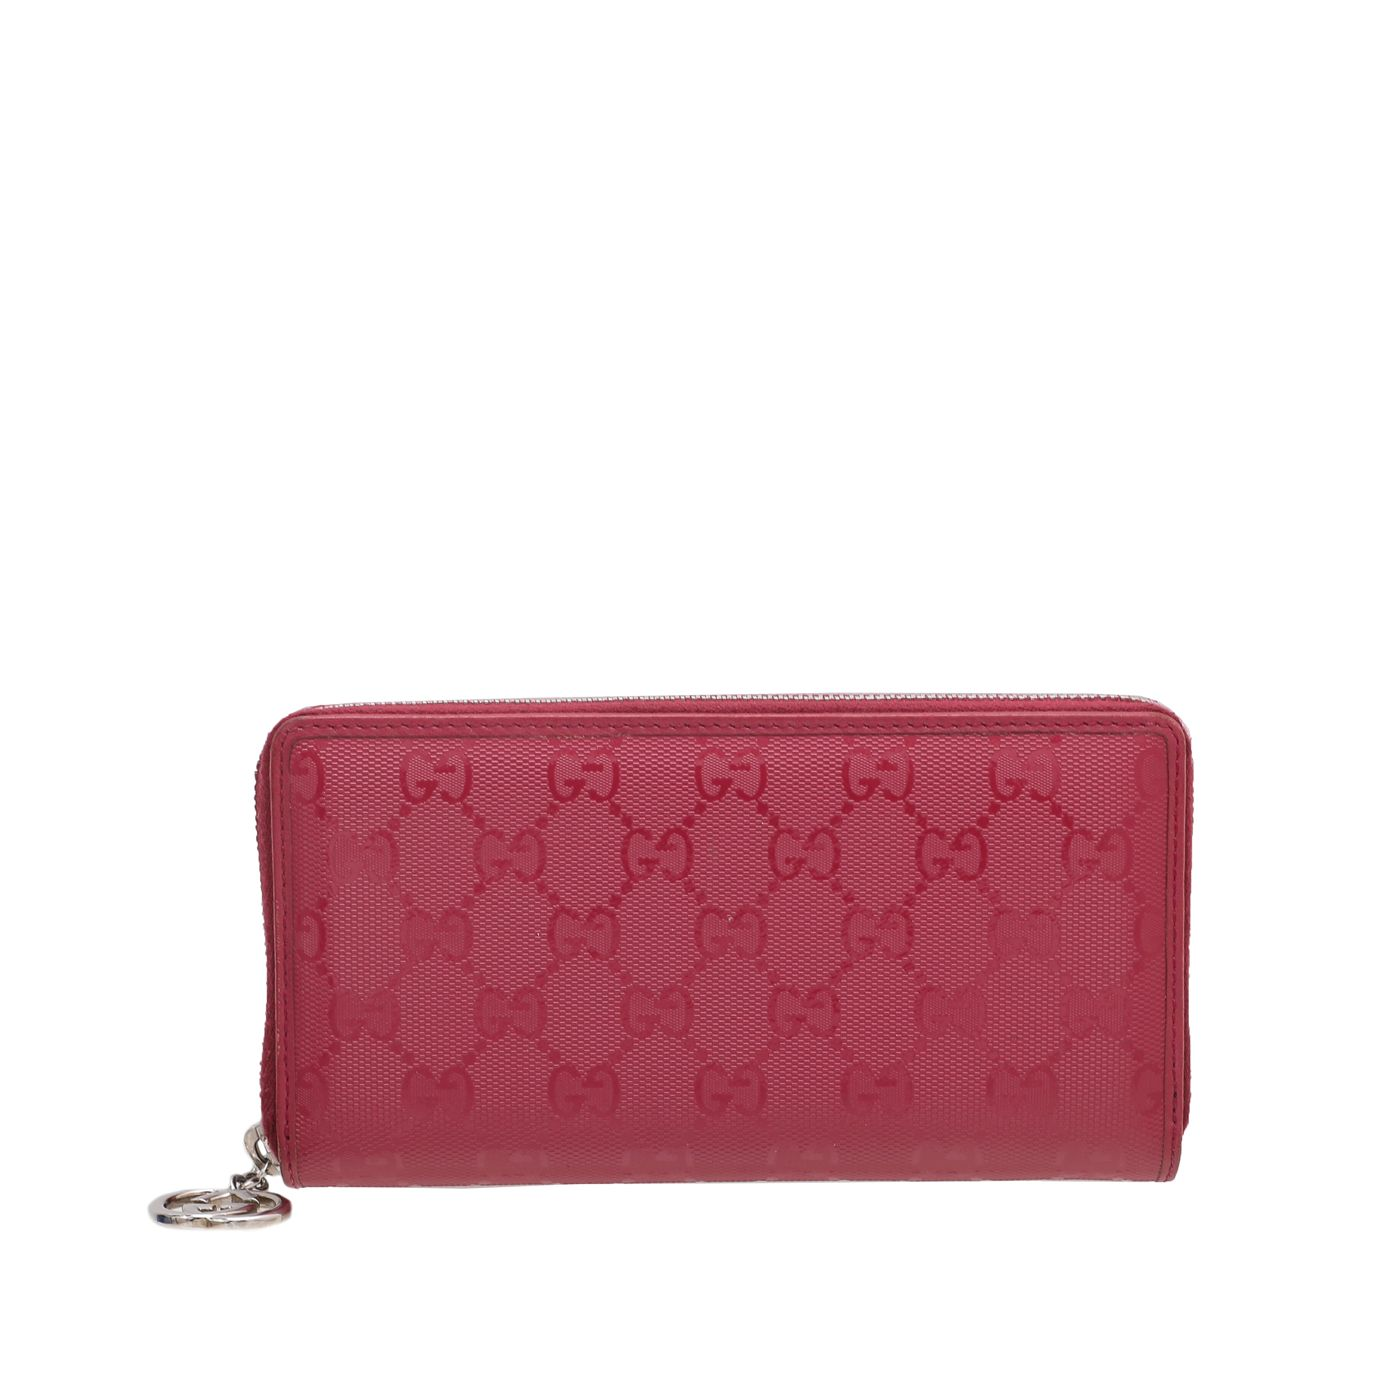 Gucci Rouge Pink GG Imprime Interlocking Charm Zipped Wallet